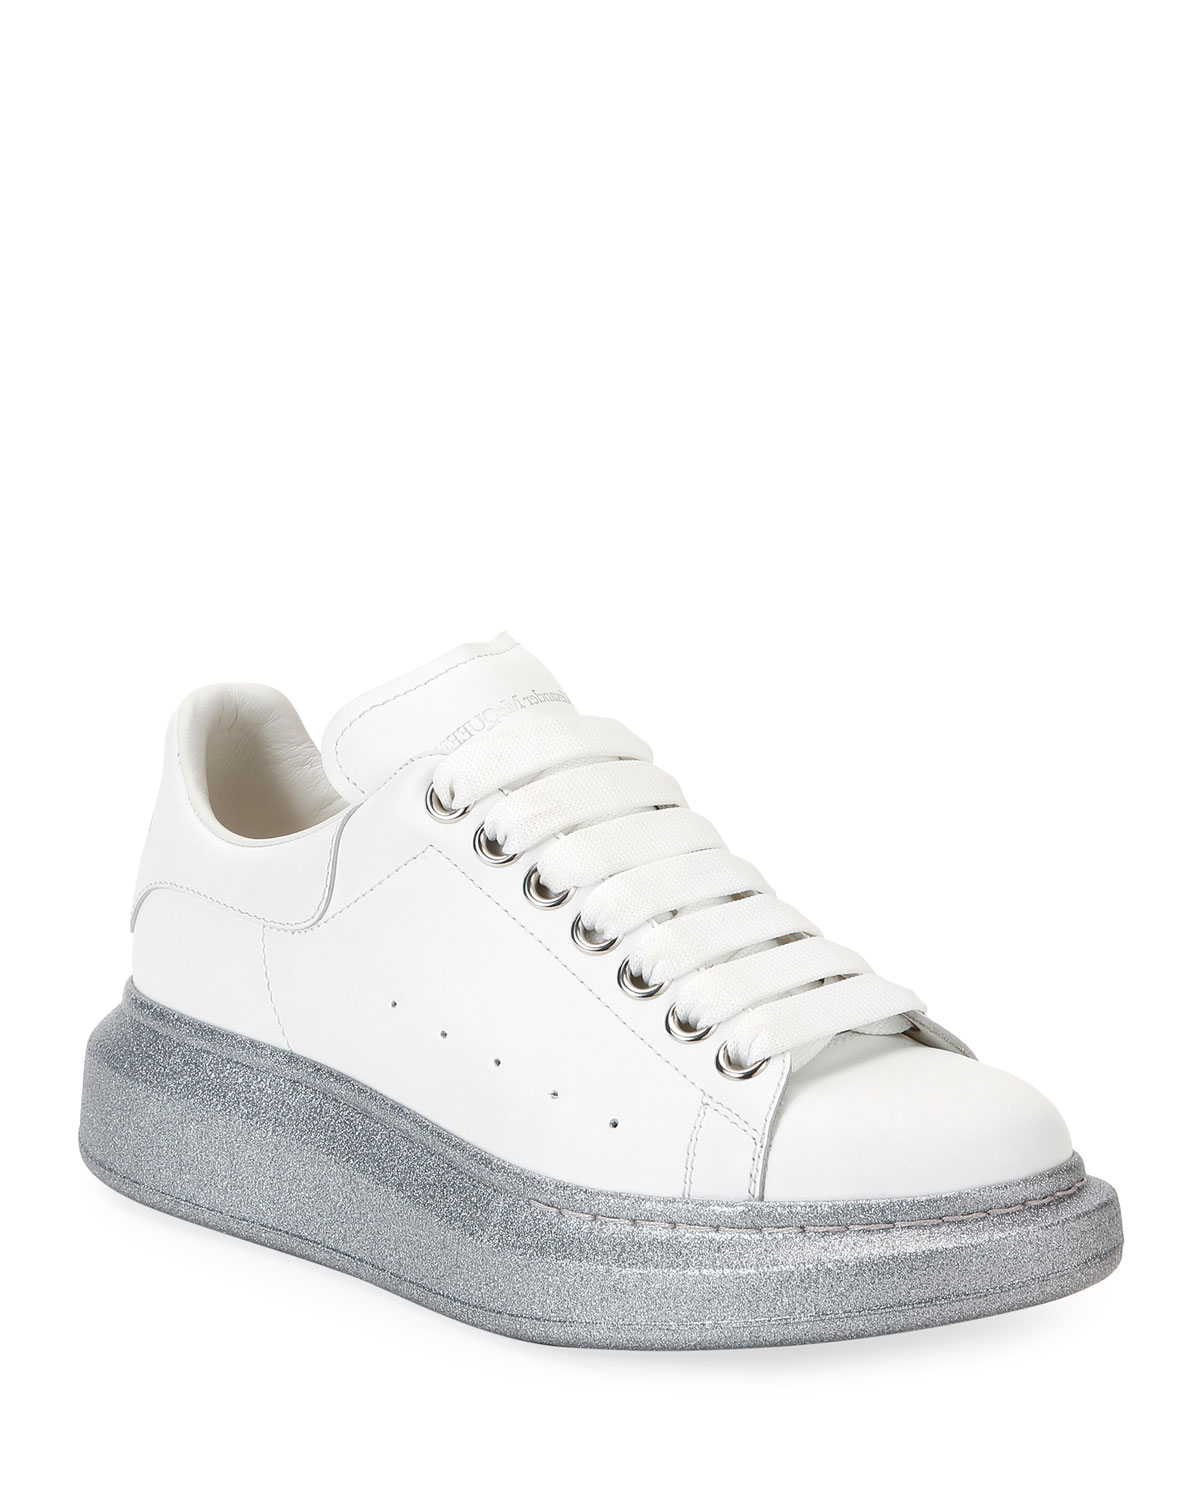 Leather Sneakers with Glitter Sole